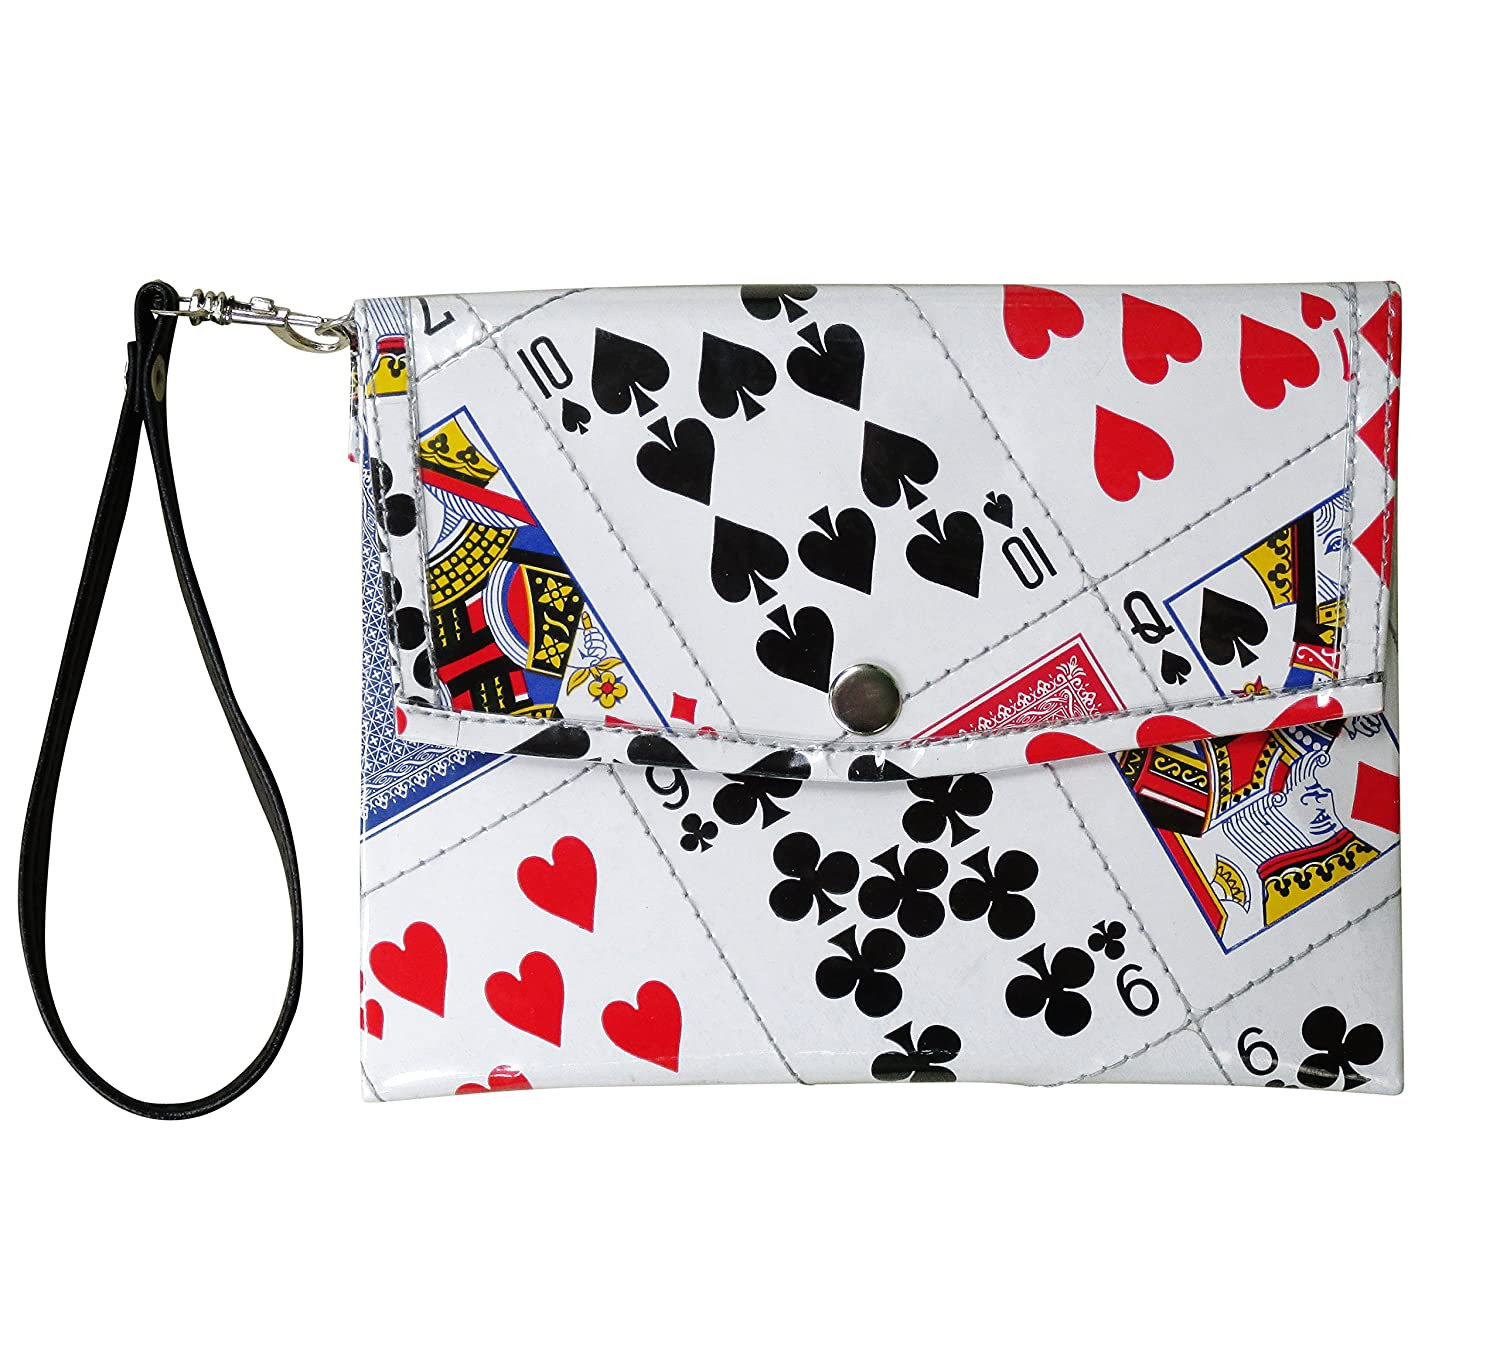 Small snap wristlet using play cards - FREE SHIPPING - upcycled eco friendly vegan recycled reclaimed salvaged handmade unique purse gift purse wallet las vegas playing card poker bridge player